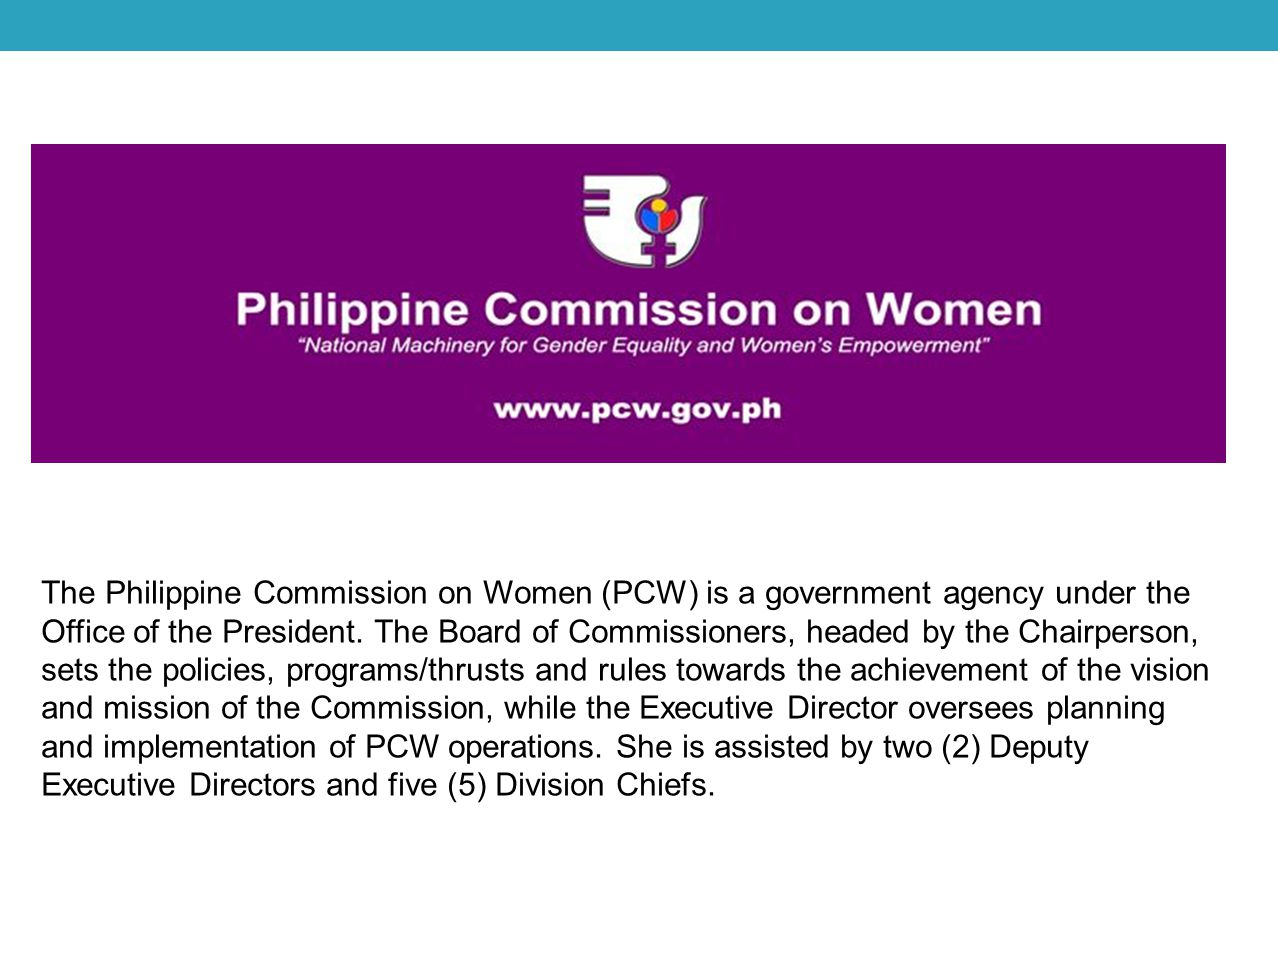 The Philippine Commission on Women (PCW) is a government agency under the Office of the President.